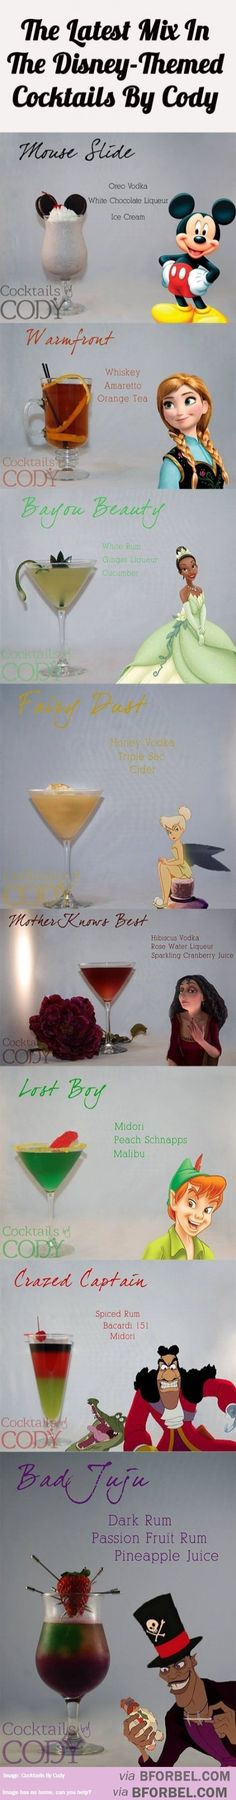 8 Of The Latest Disney-Themed Cocktails- need to try these :)